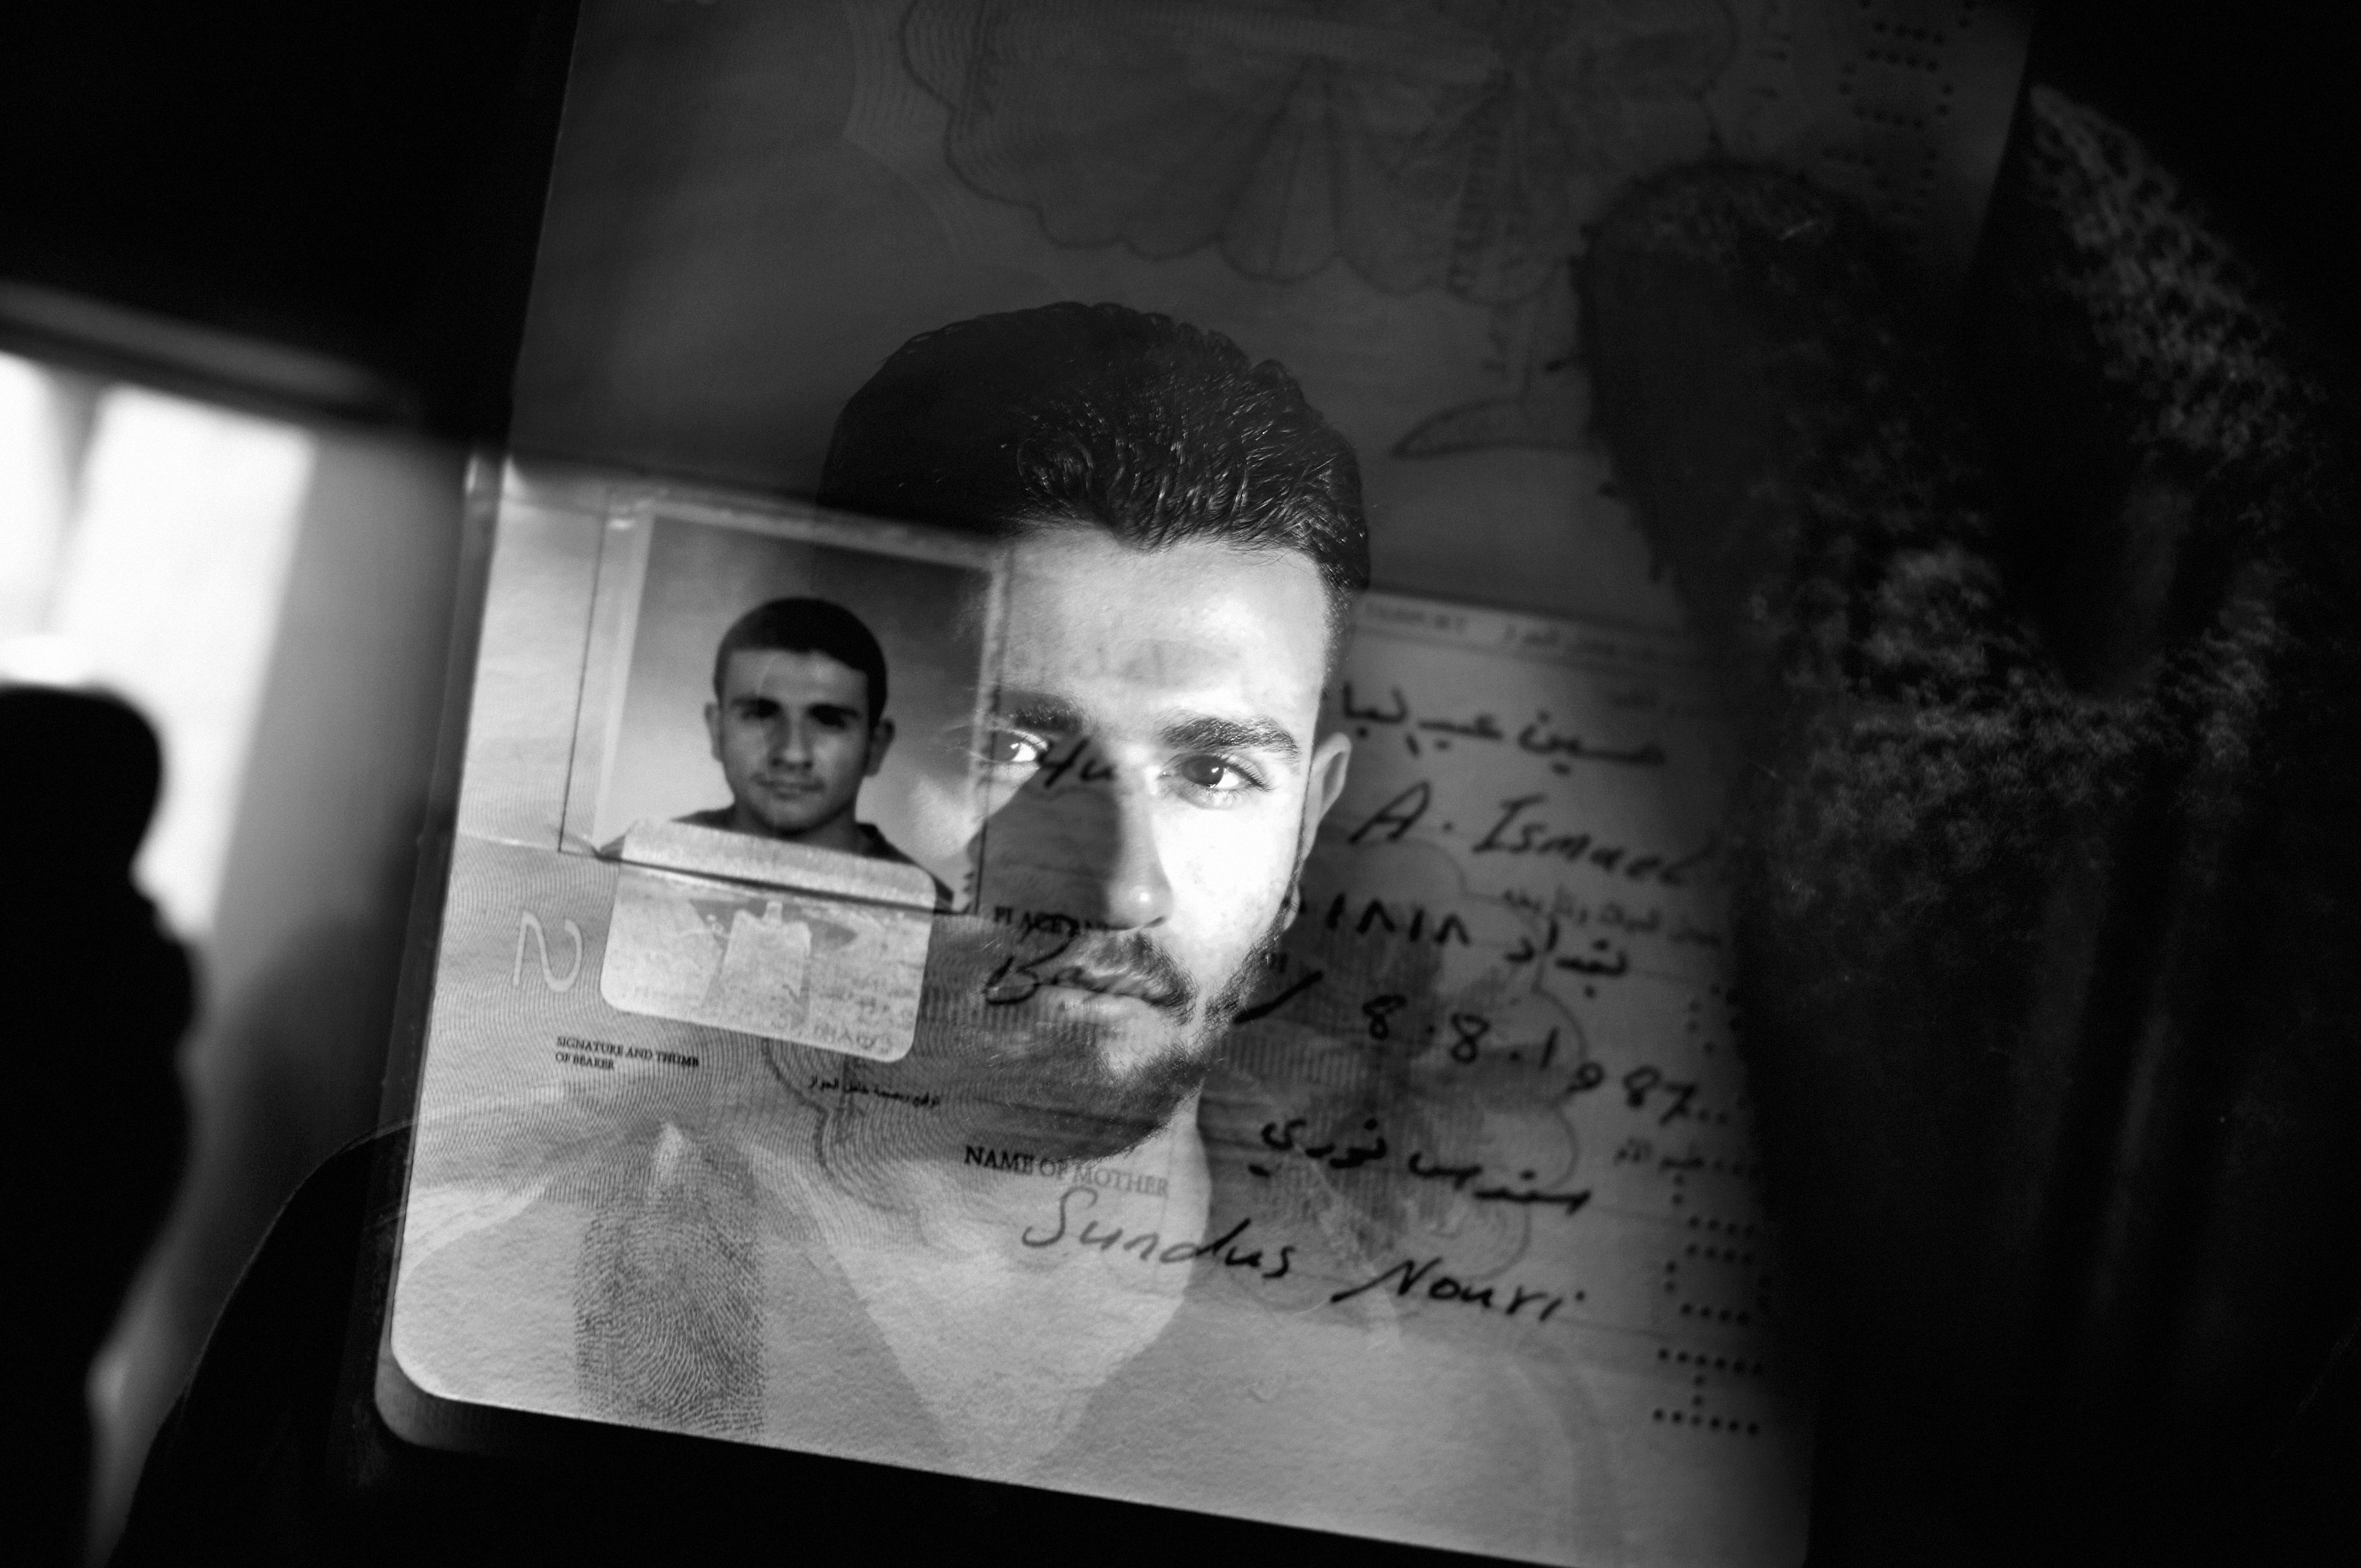 A double exposure portrait of a Sunni student with his identity card in the Sunni Adhamiya neighborhood, Baghdad, Iraq January 22, 2007.                               During the height of the civil war, as the city divided along sectarian lines, a Sunni or Shia name appearing on an identify card could result in death sentence.